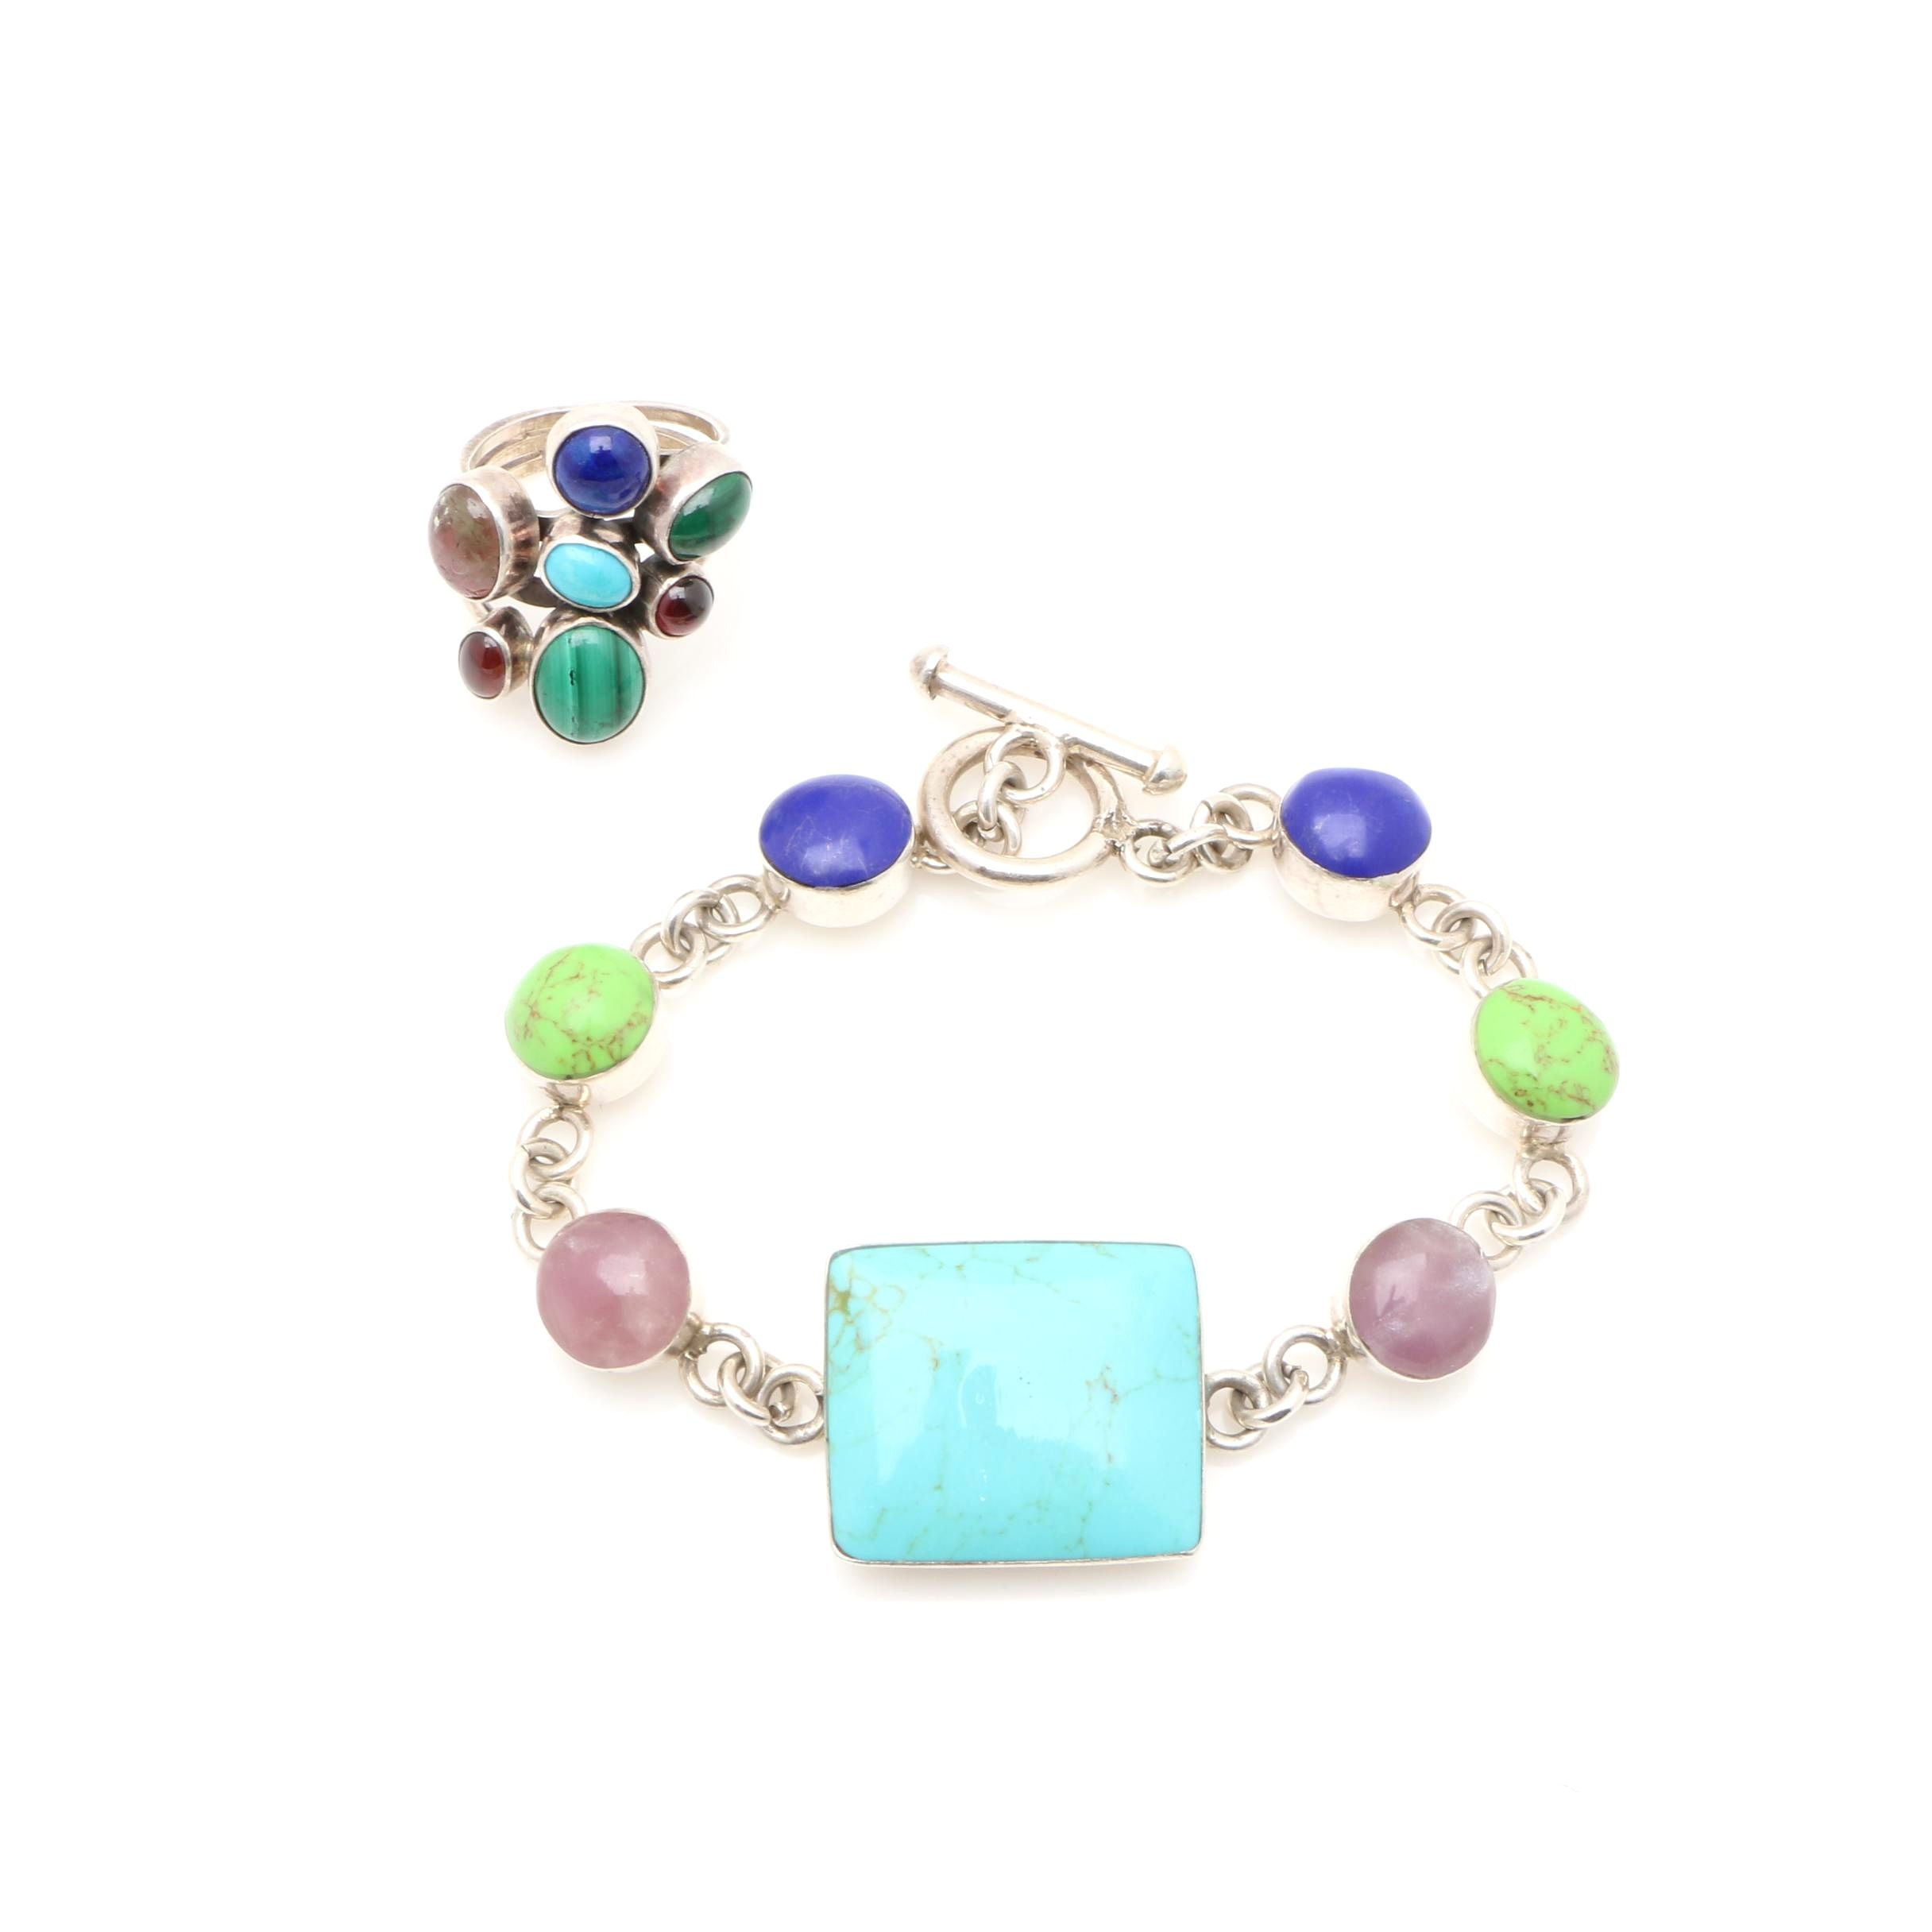 Sterling Silver Gemstone Ring and Bracelet Including Turquoise